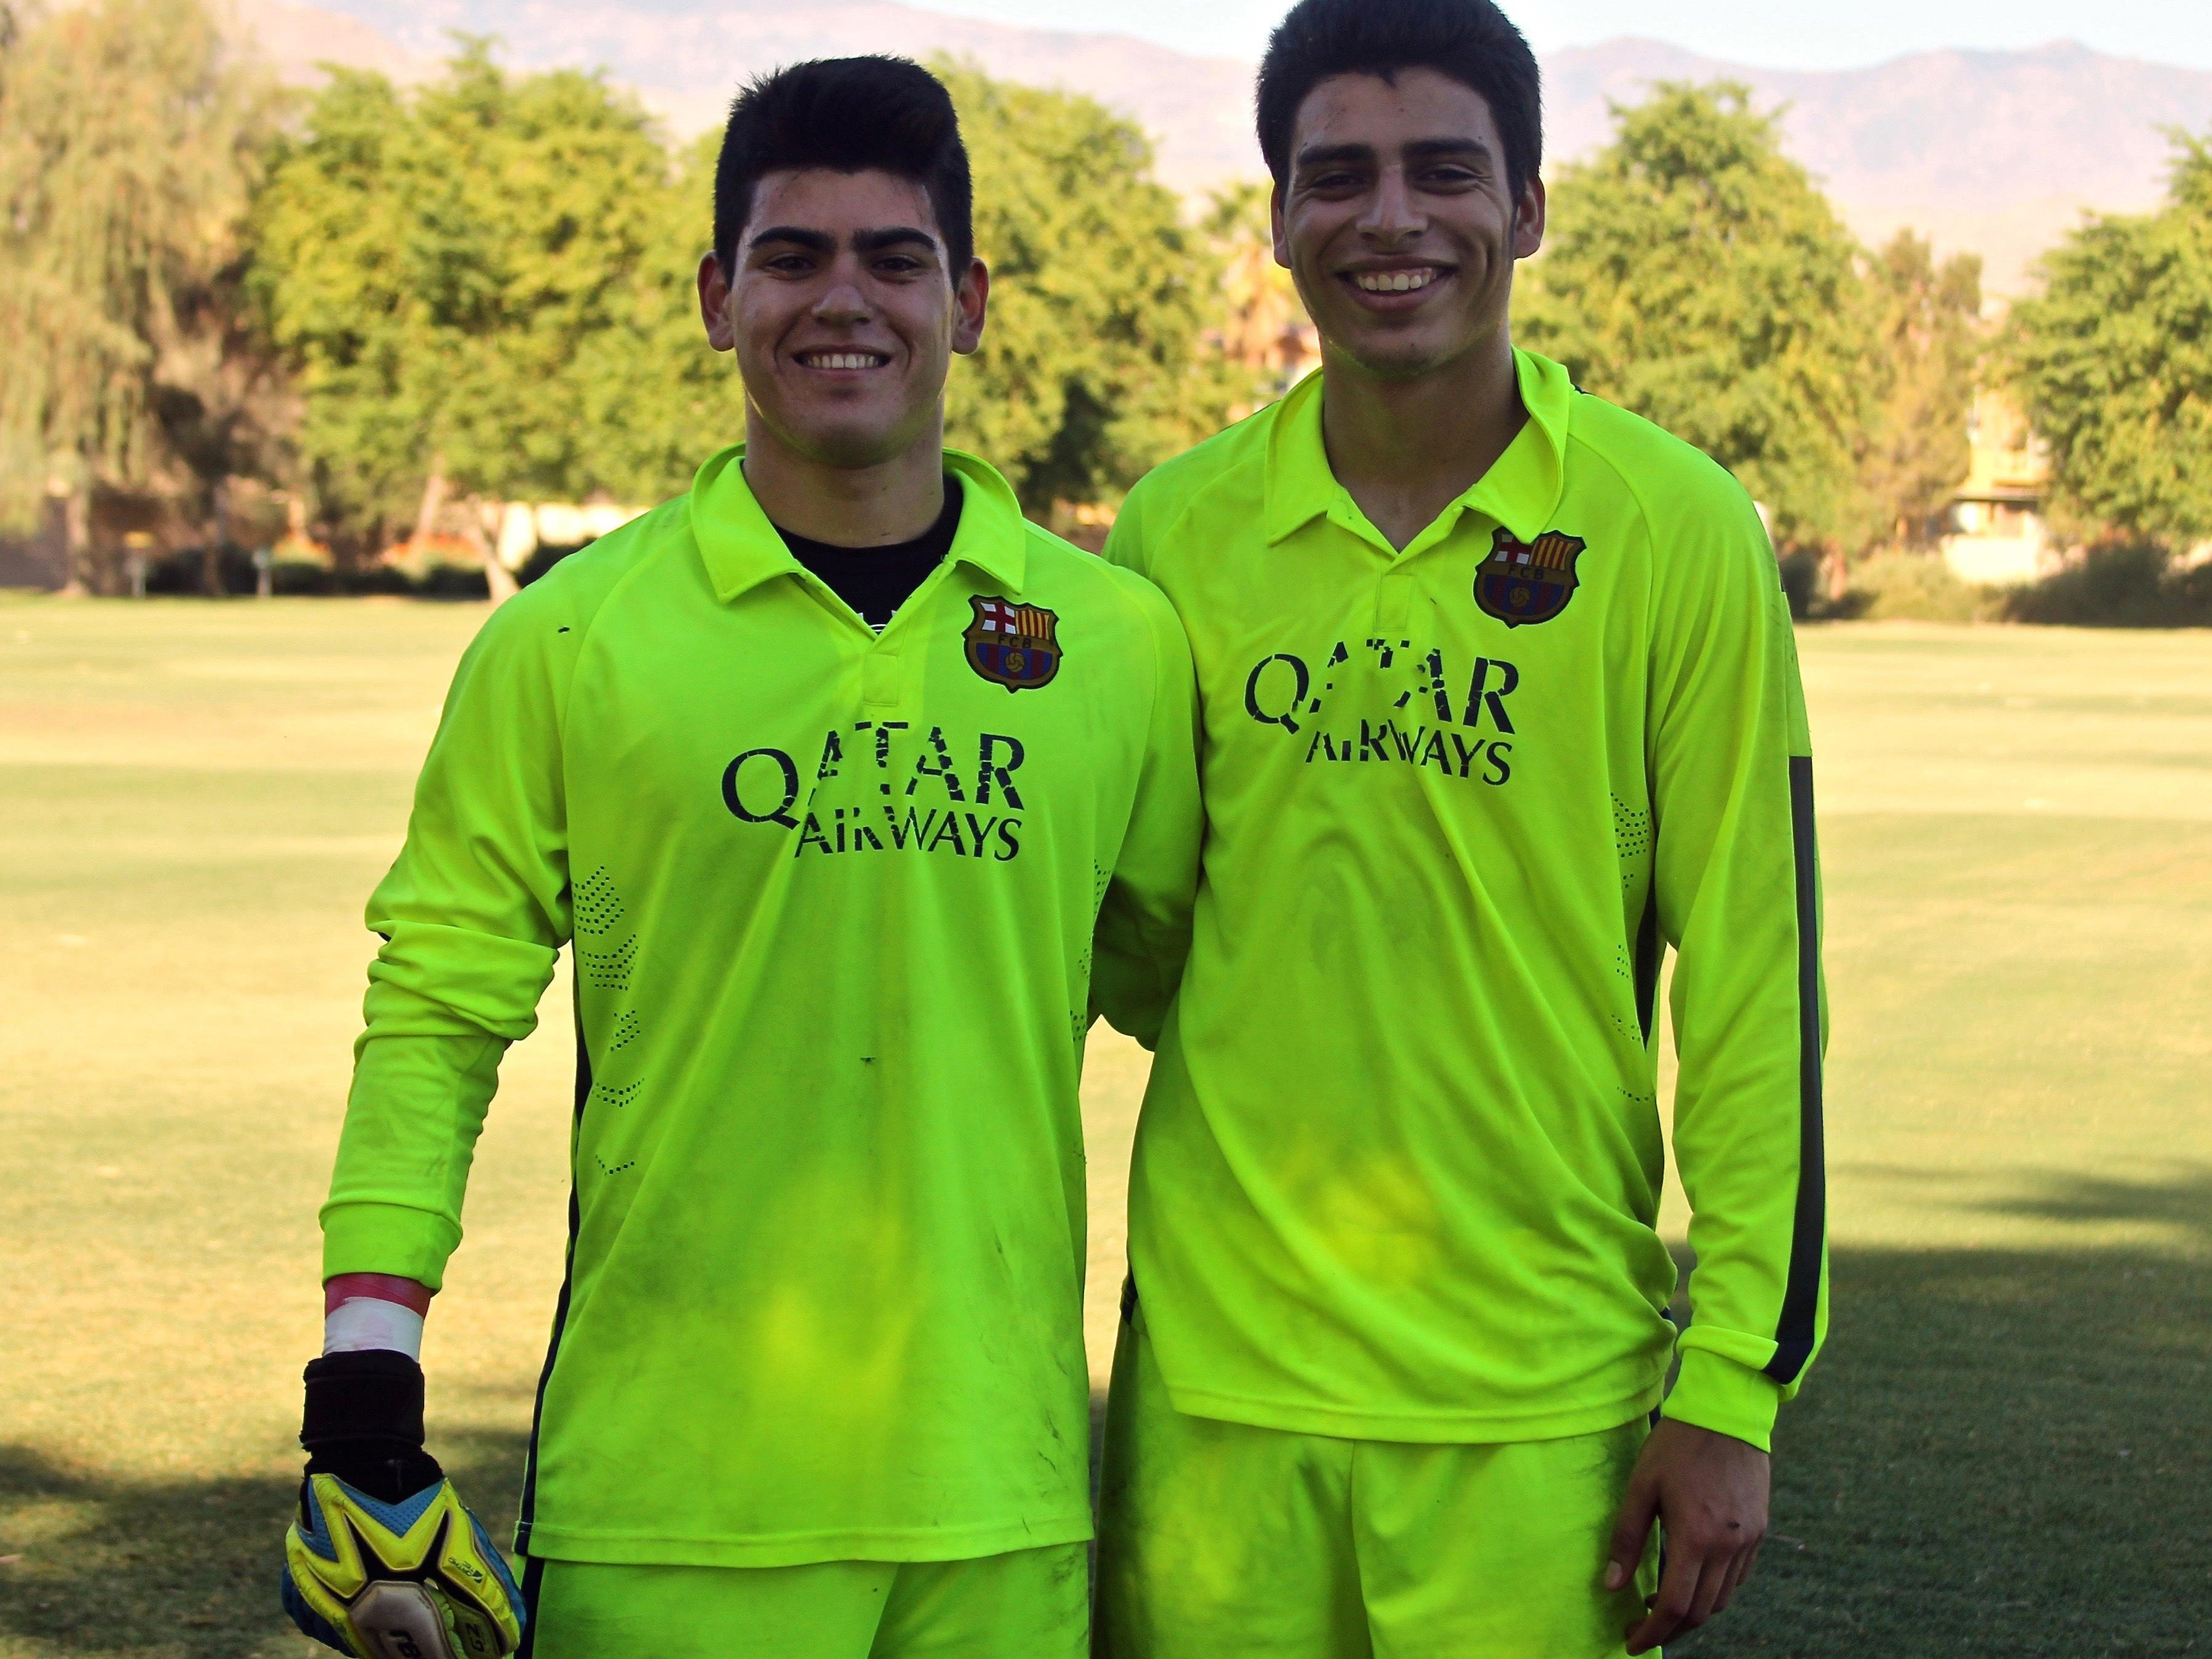 Uriel Lopez (right) is on his way to Mexico on Friday where he will start Chivas Guadalajara's Development Program. Rivera (left) has a soccer tryout this Saturday that will determine if he is qualified to join the program.